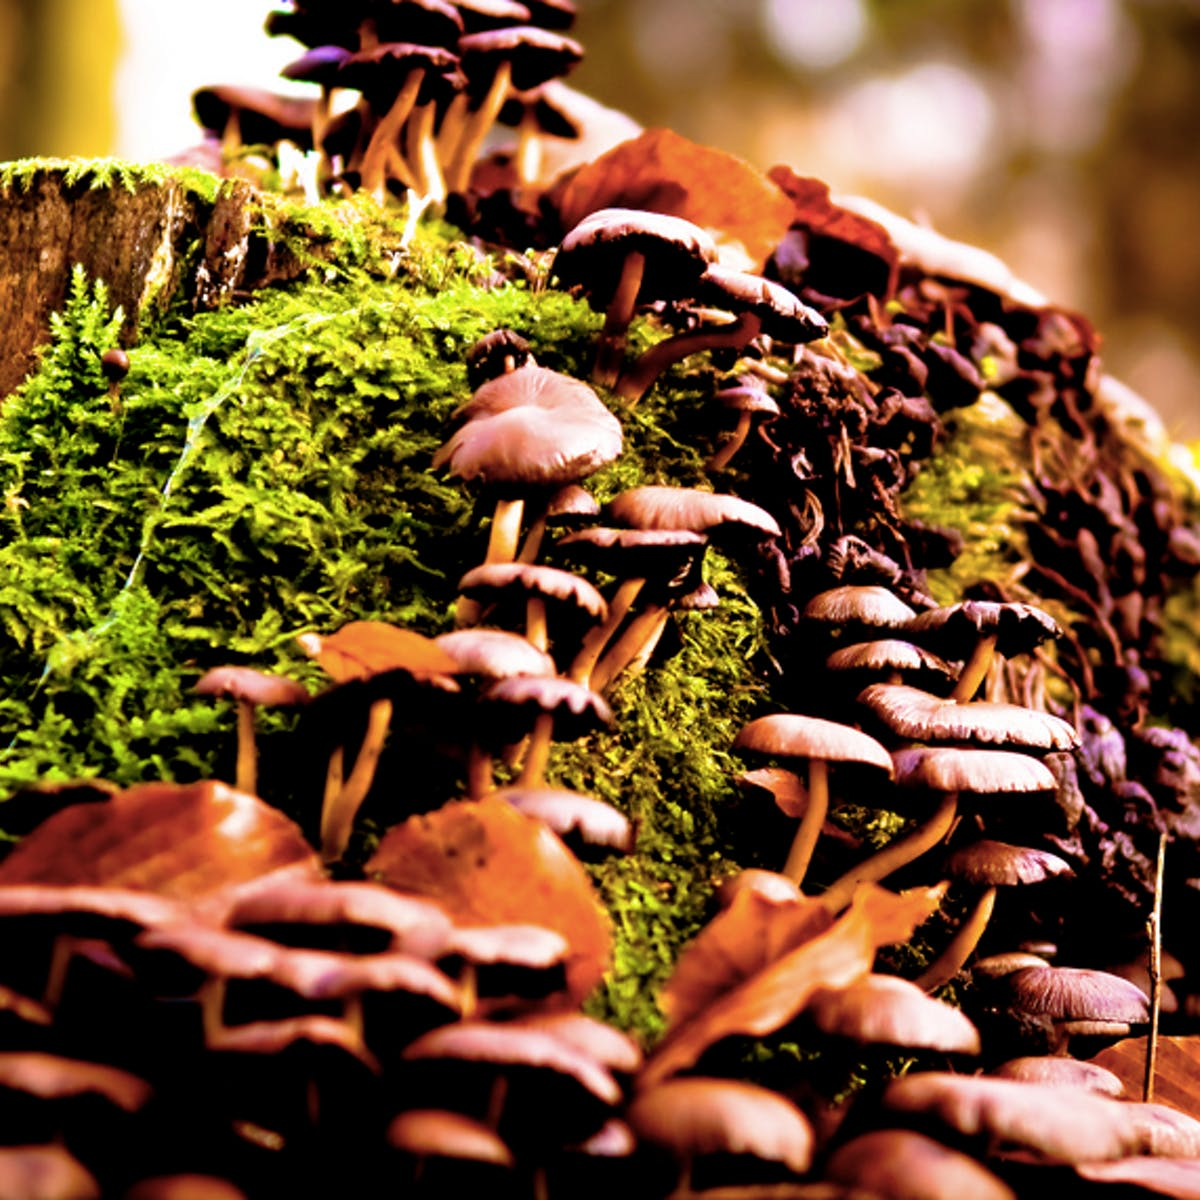 Scientists Discover Why Magic Mushrooms Evolved Psilocybin